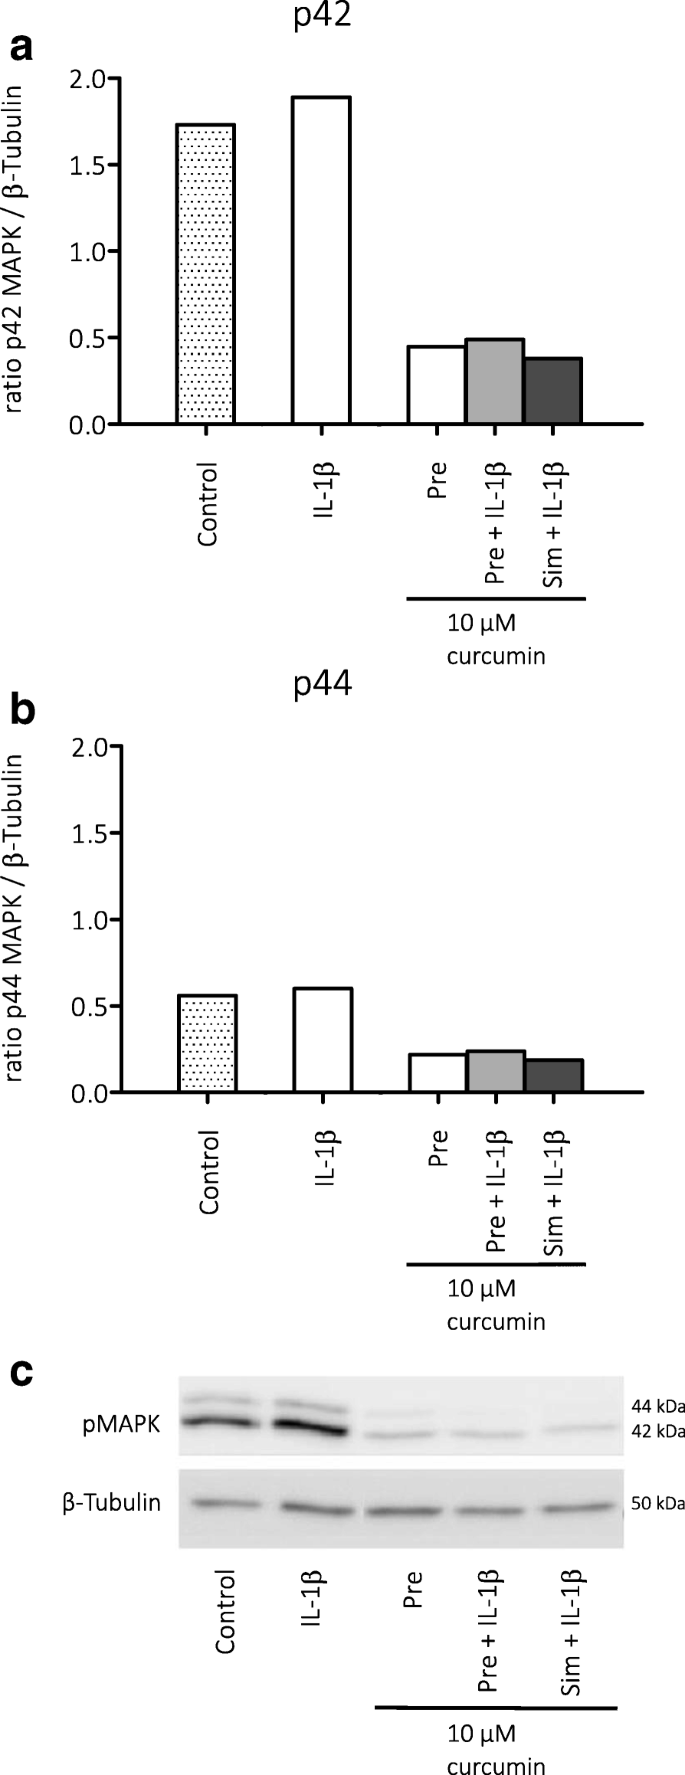 Effects of rapamycin and curcumin on inflammation and